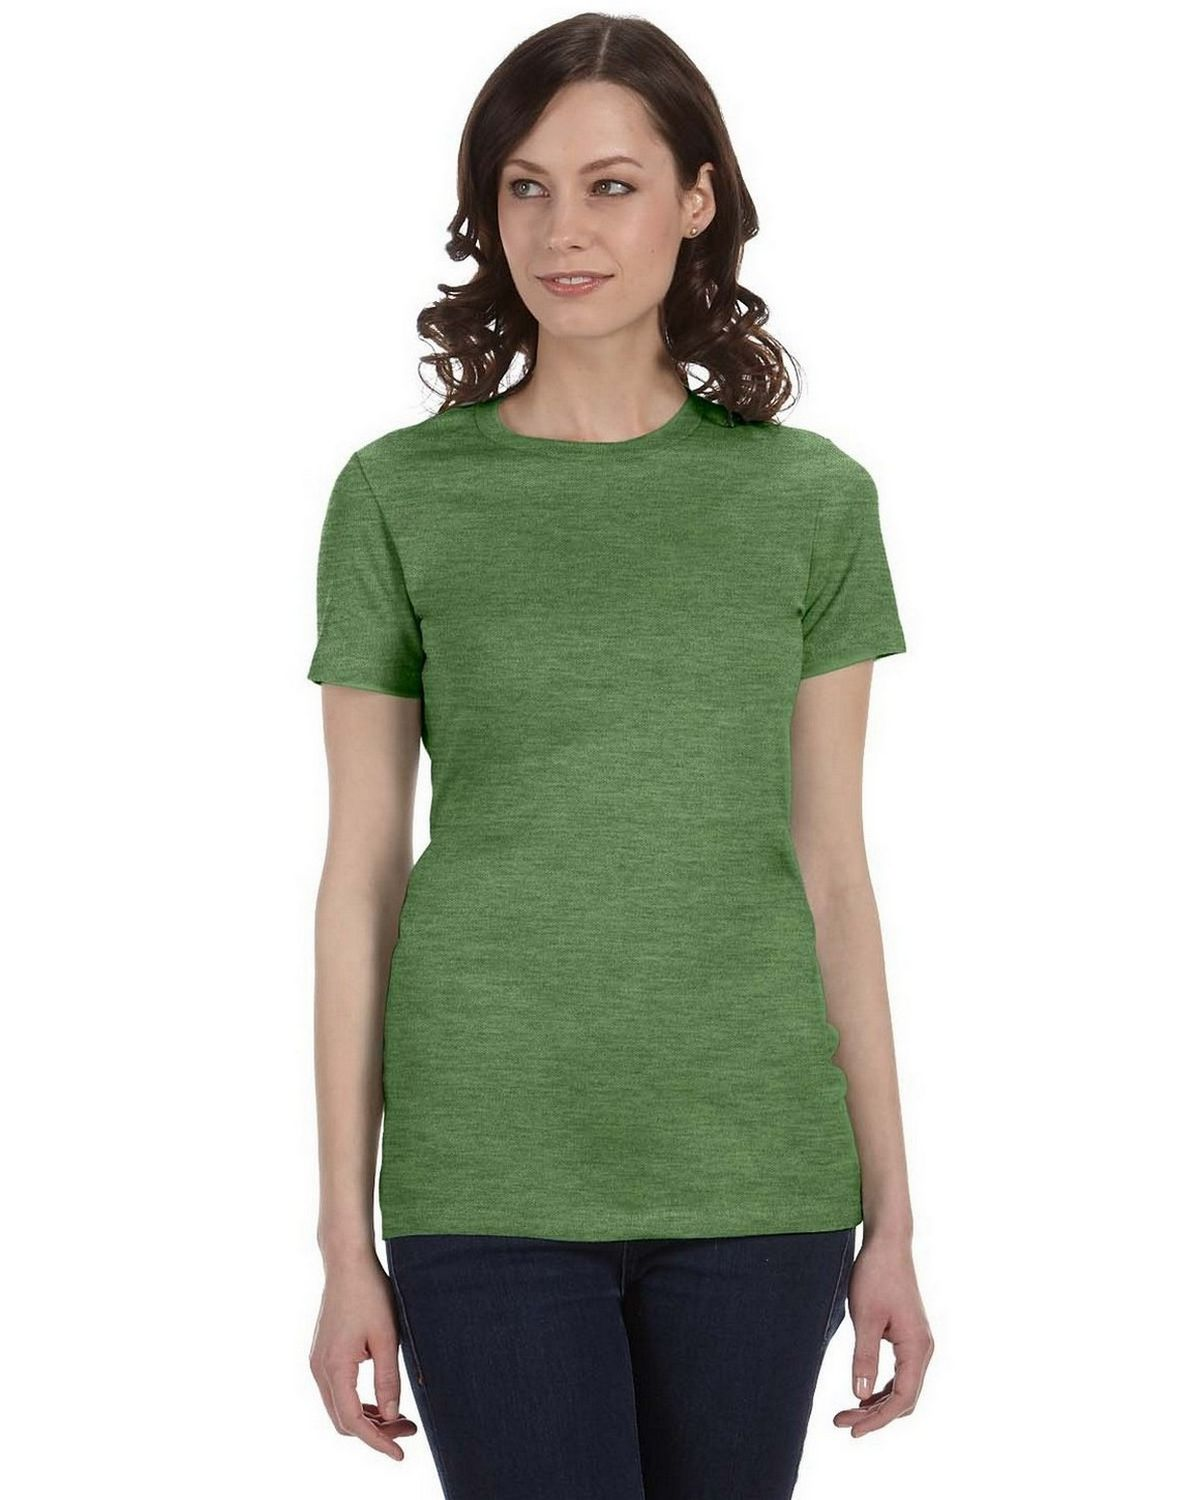 Bella + Canvas 6004 Ladies The Favorite T-Shirt - Heather Green - L 6004